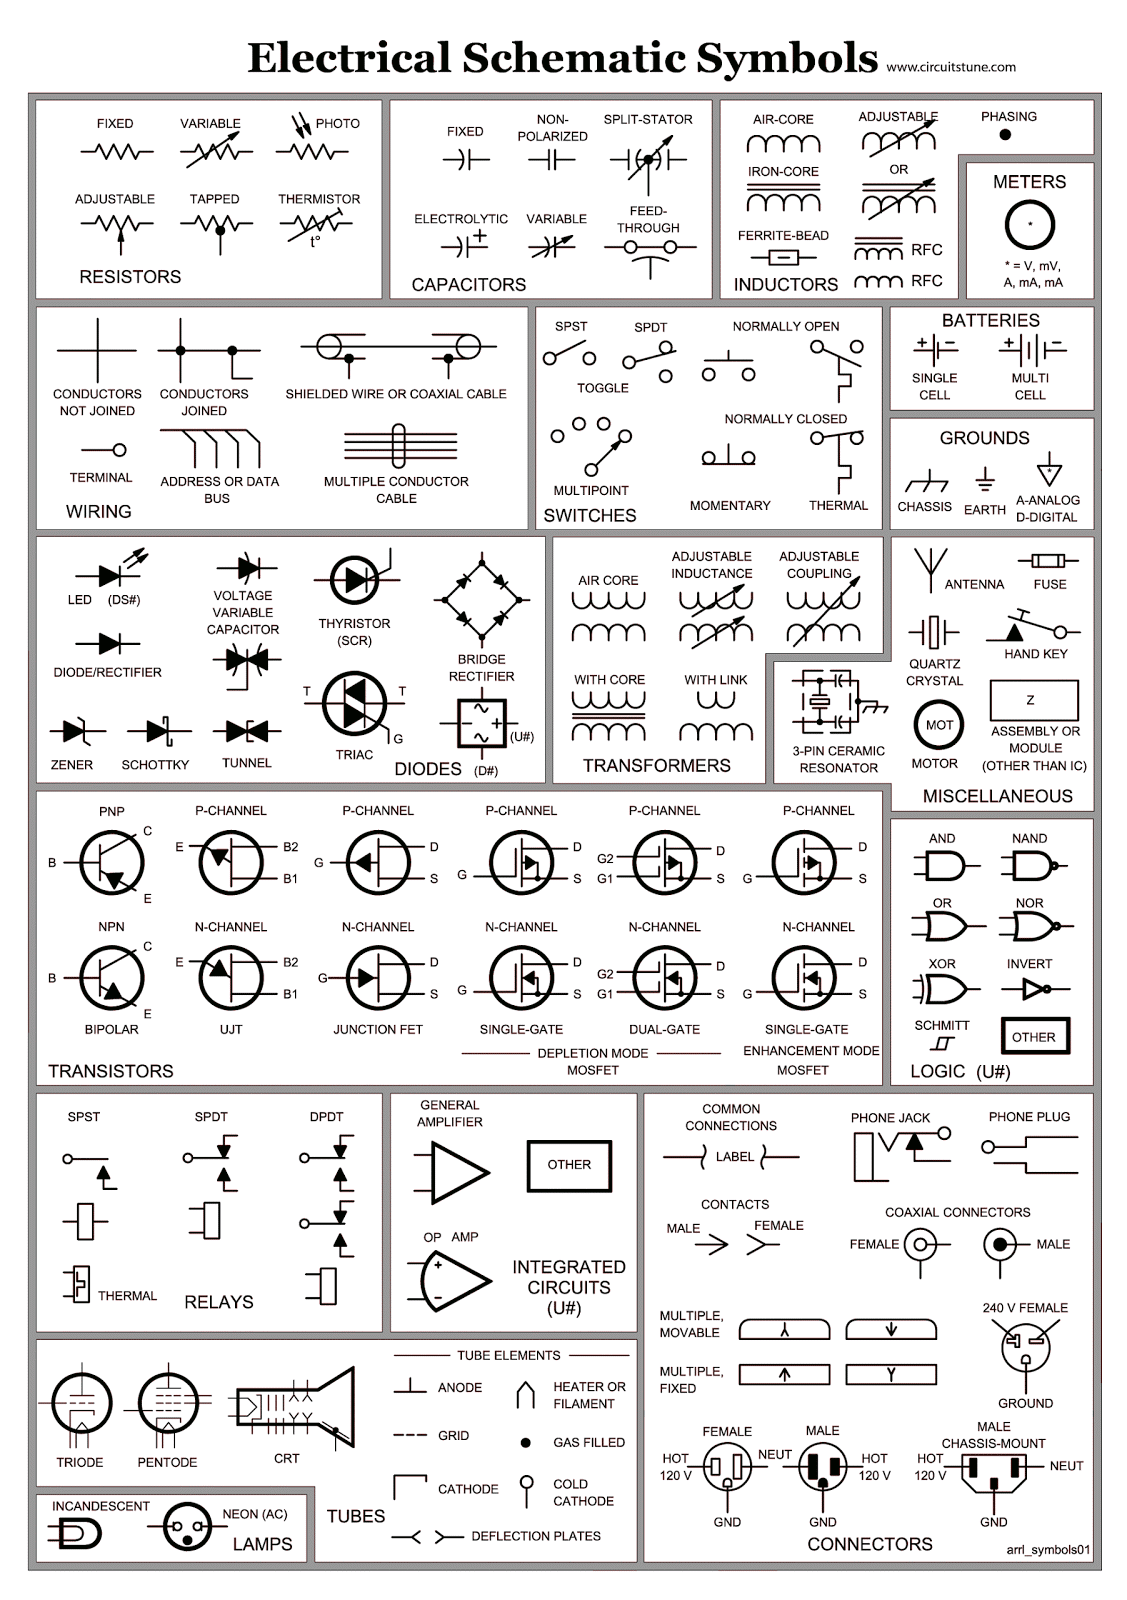 Electrical Schematic Symbols Circuitstune Click For Details